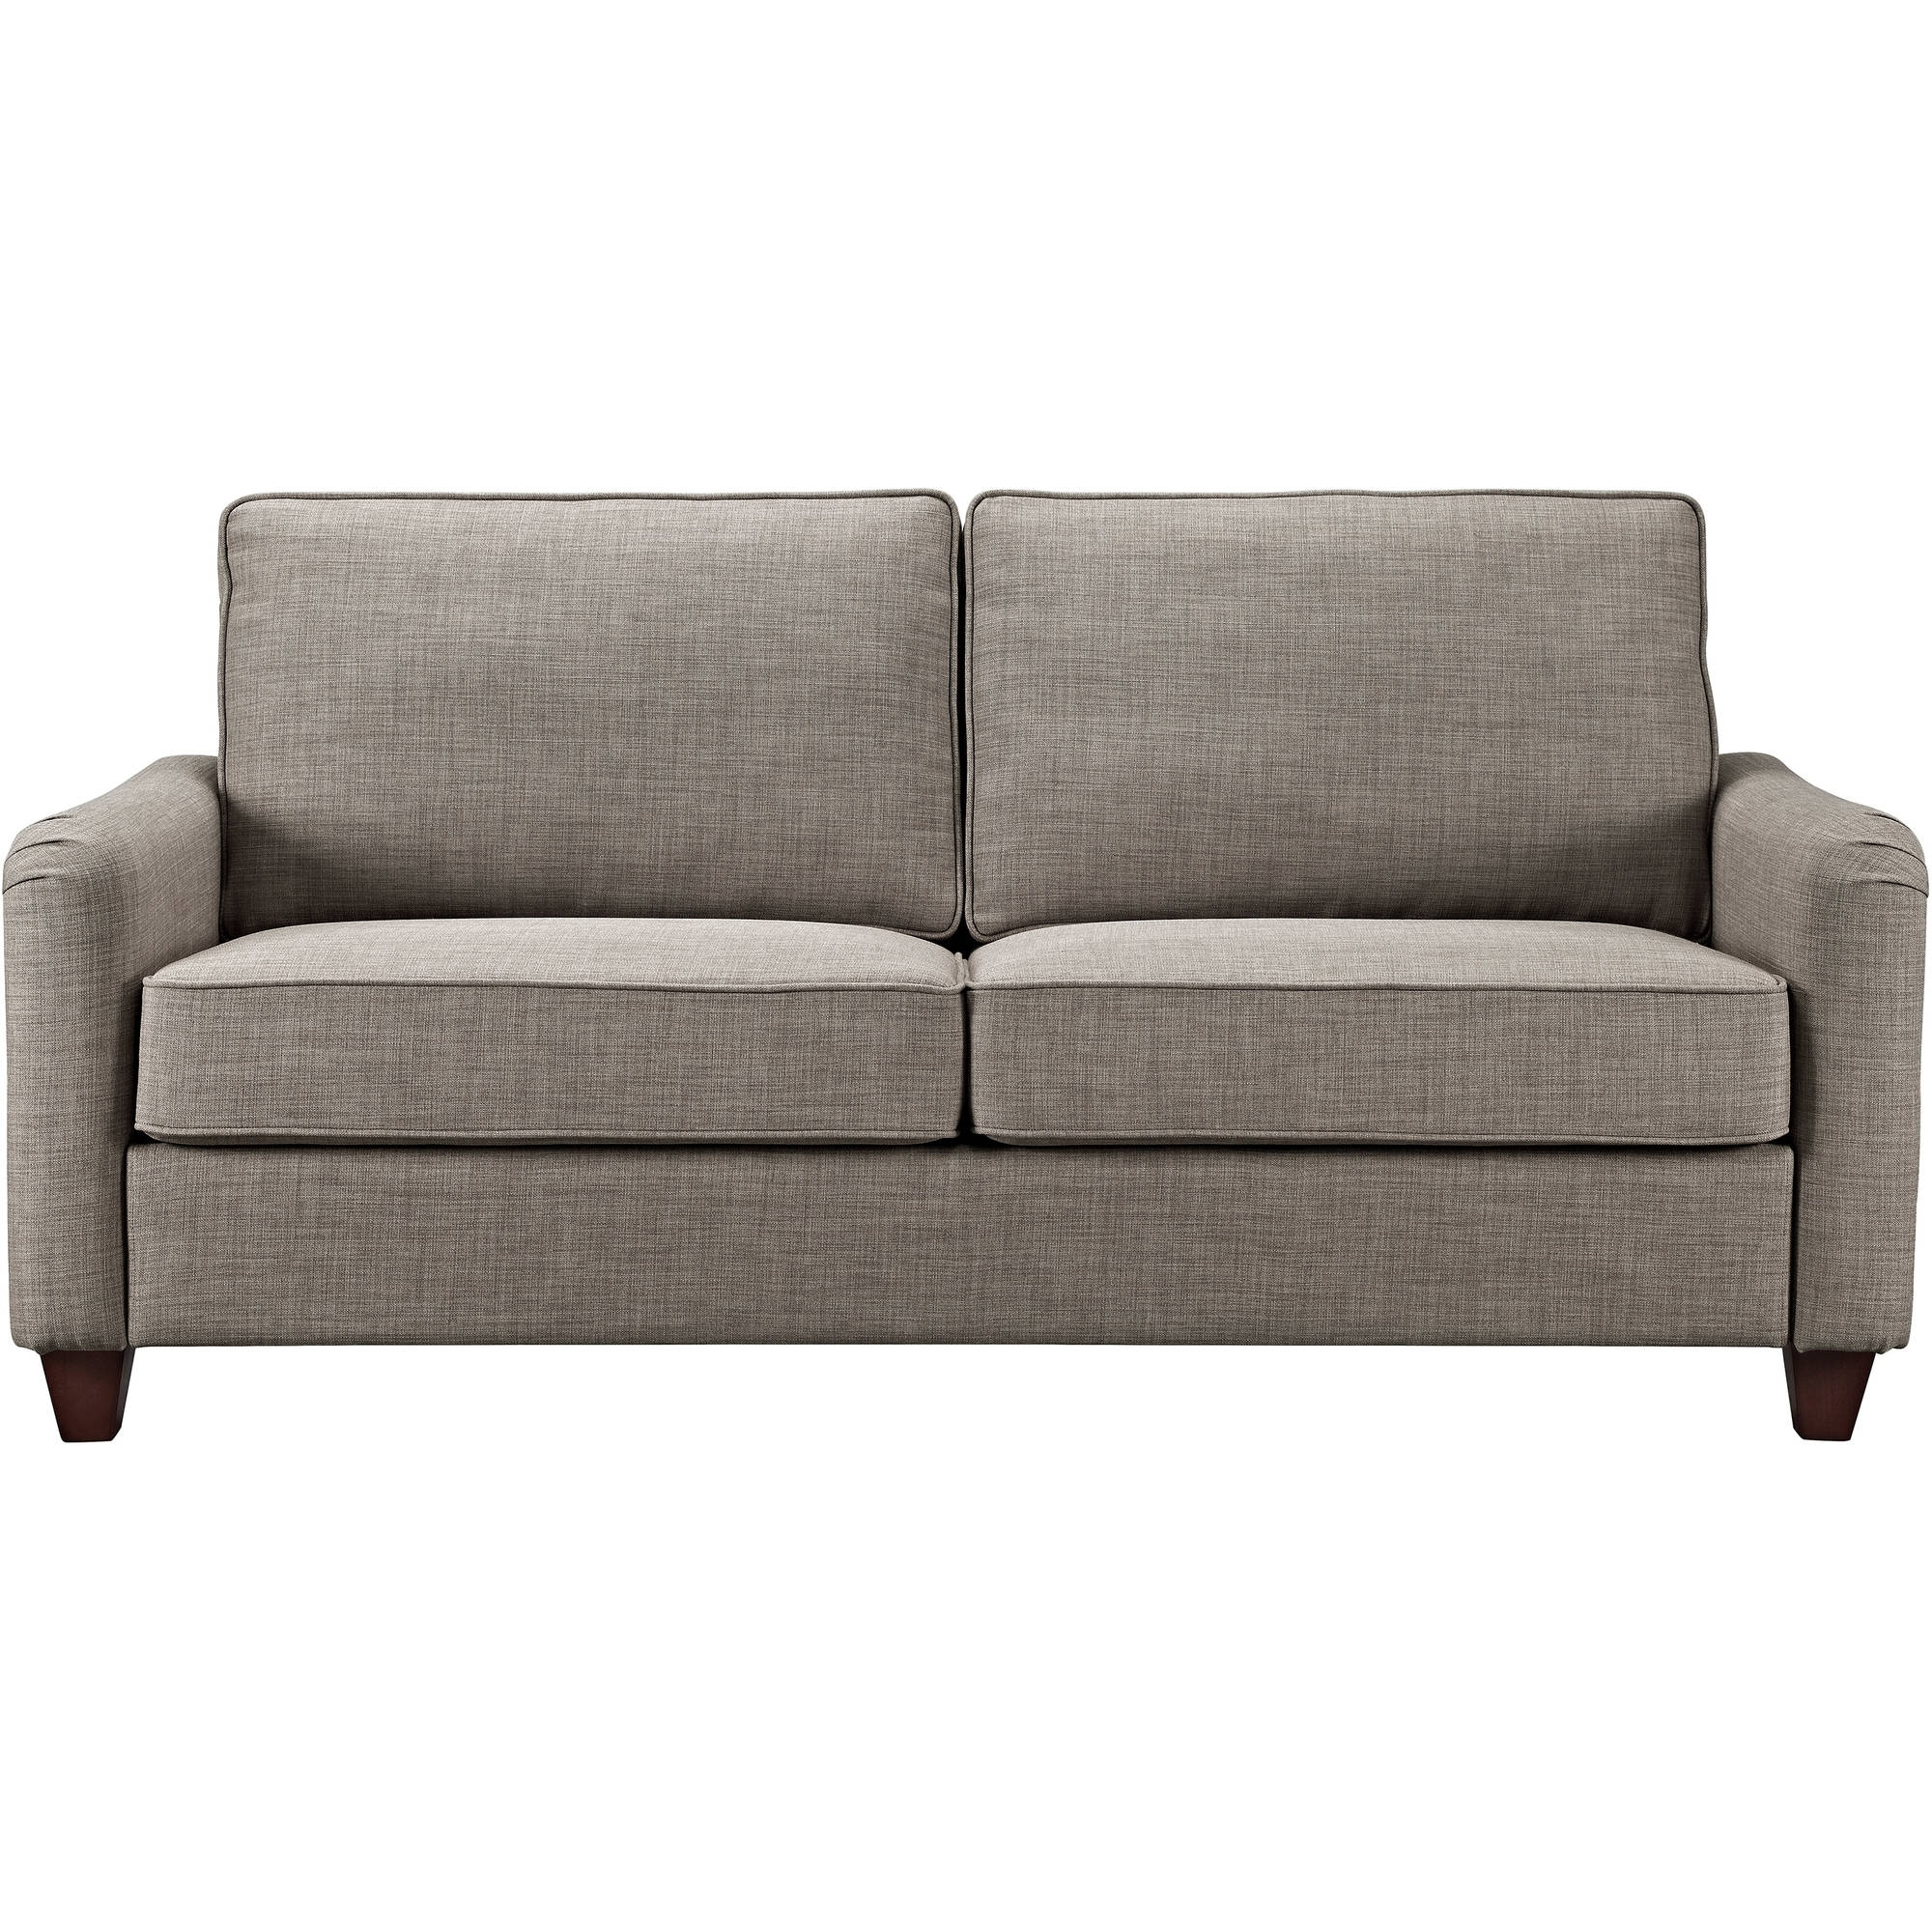 Most Popular Sectional Sofas At Barrie Regarding Sofas & Couches – Walmart (View 8 of 20)